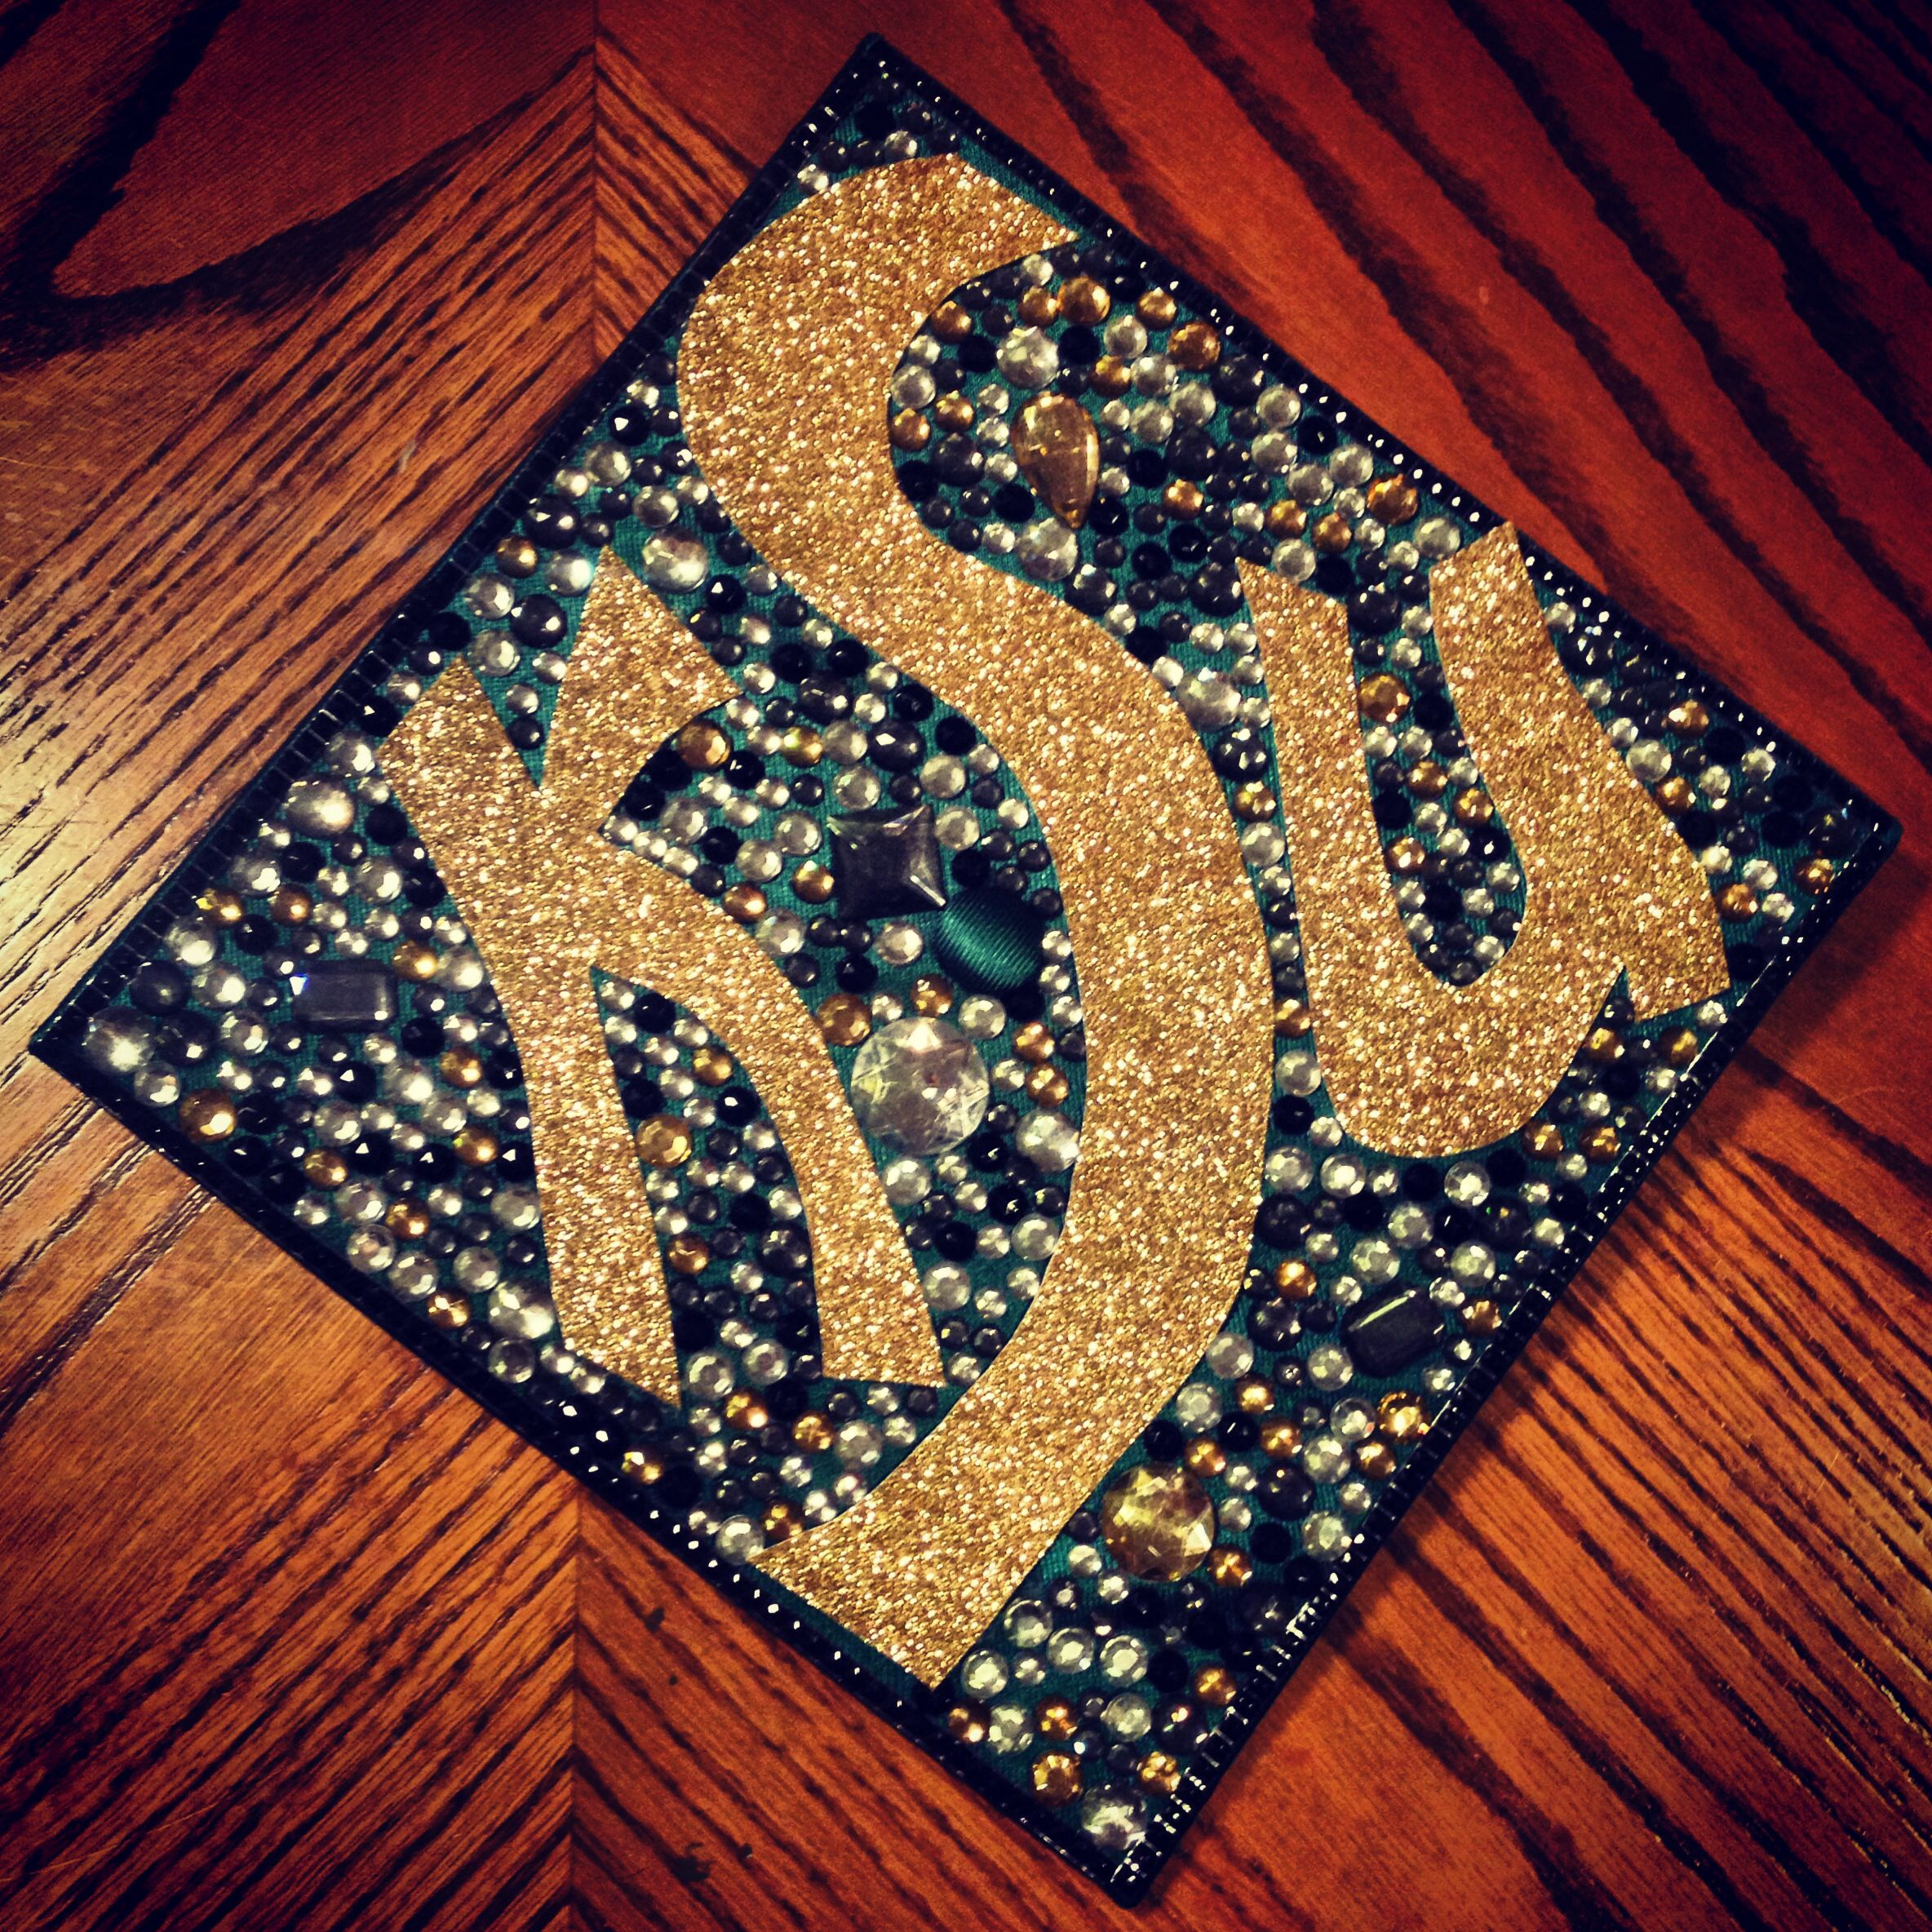 My graduation cap decorated! Kennesaw State University